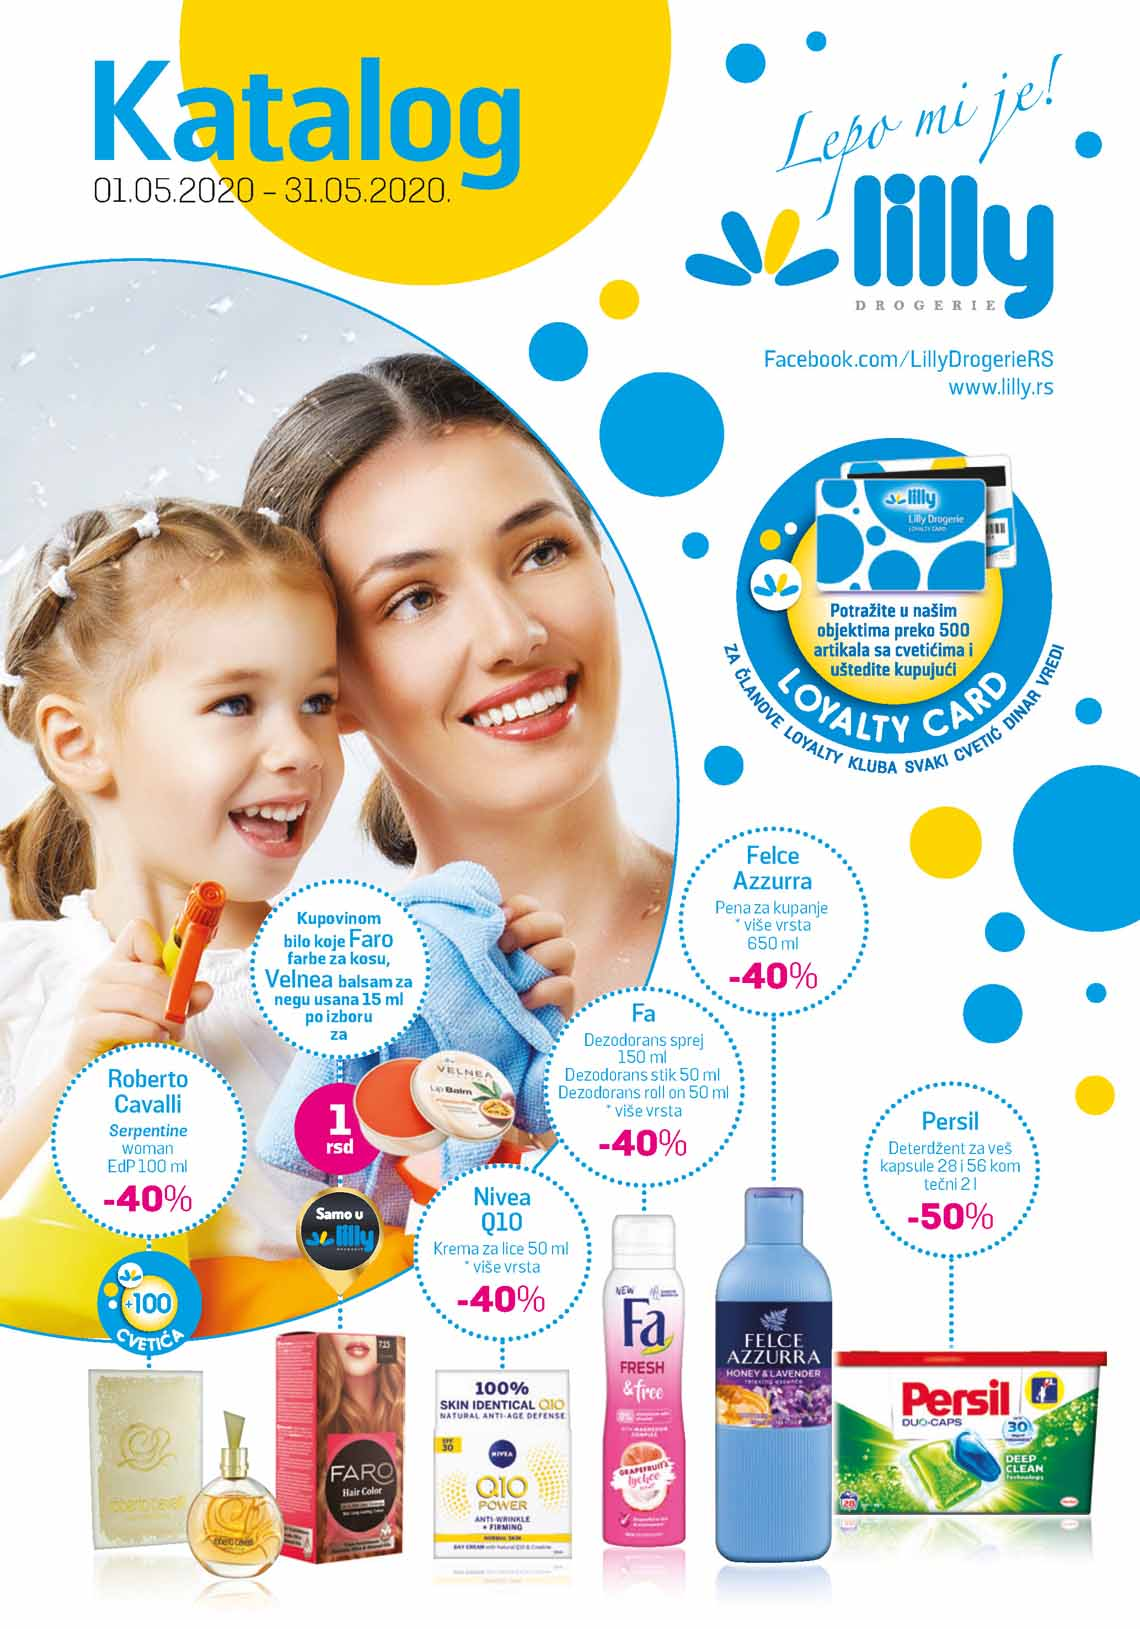 LILLY DROGERIE Katalog - Super akcija do 31.05.2020.